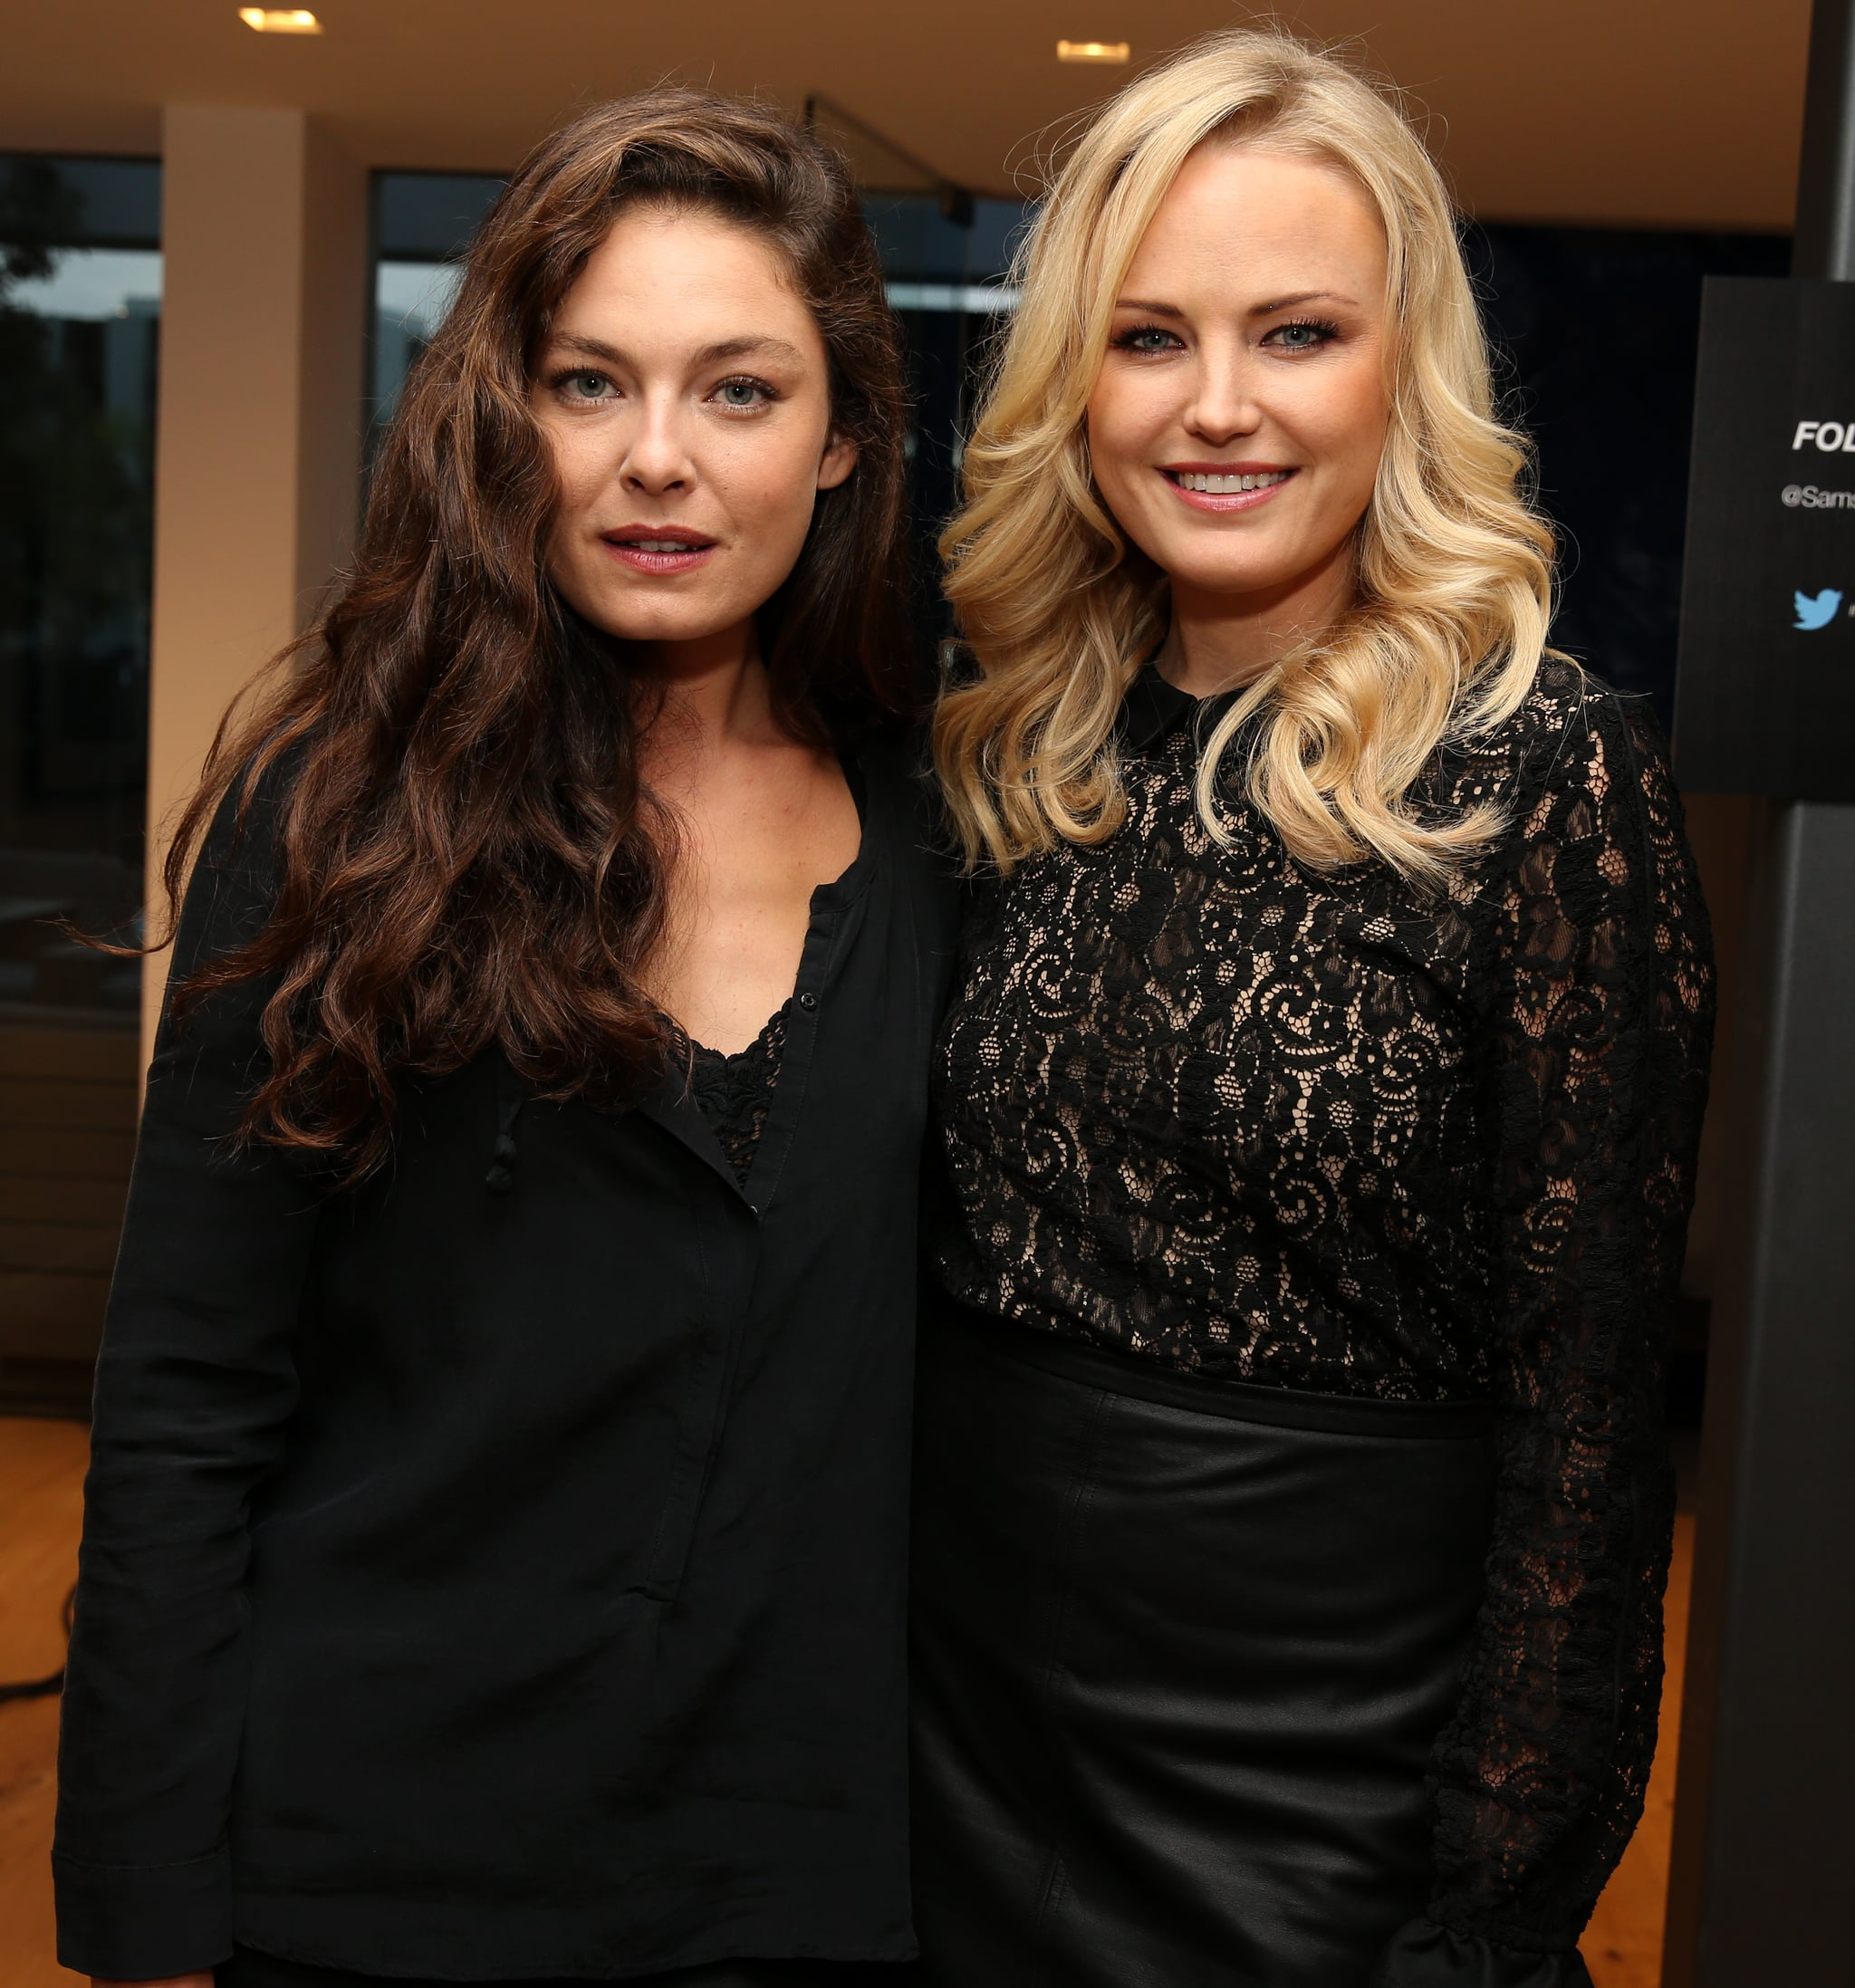 Malin Akerman and Alexa Davalos attended the Variety Awards Studio in LA.